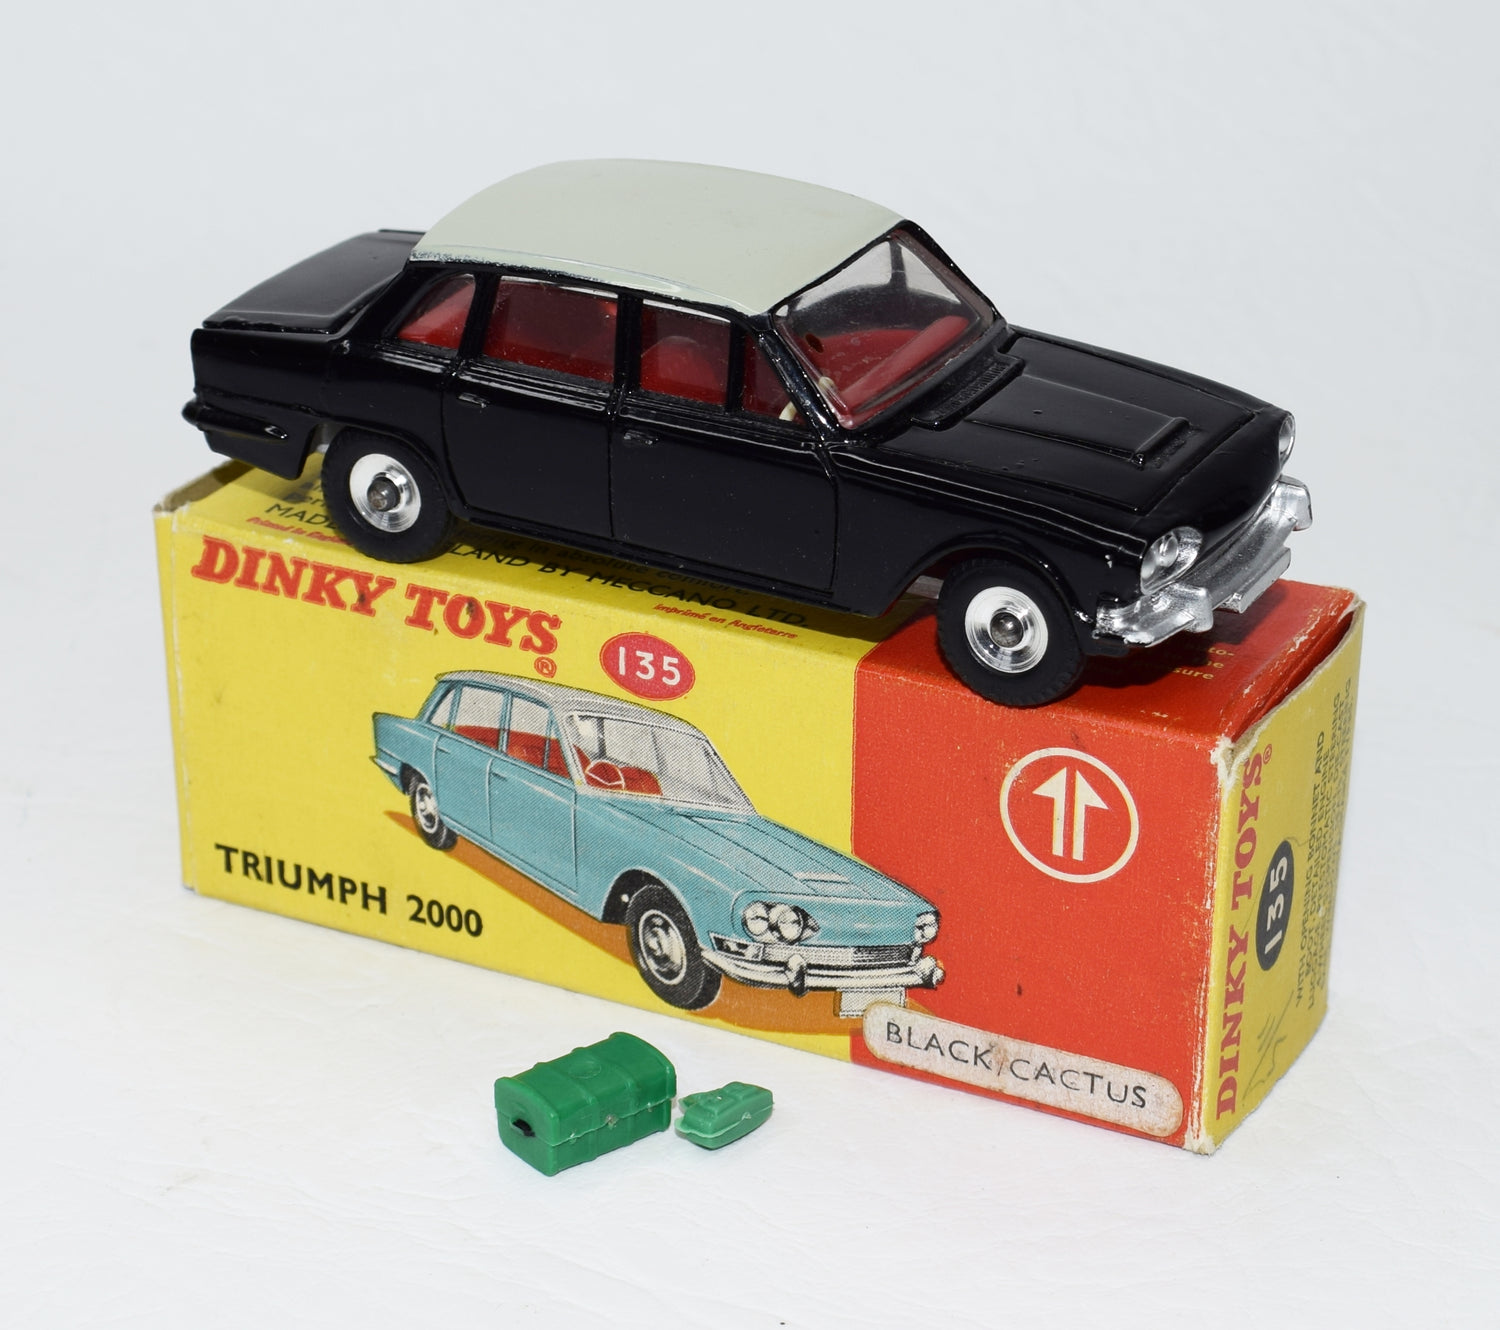 Dinky toys 135 Triumph 2000 Promotional Virtually Mint/Boxed (Black&Cactus).